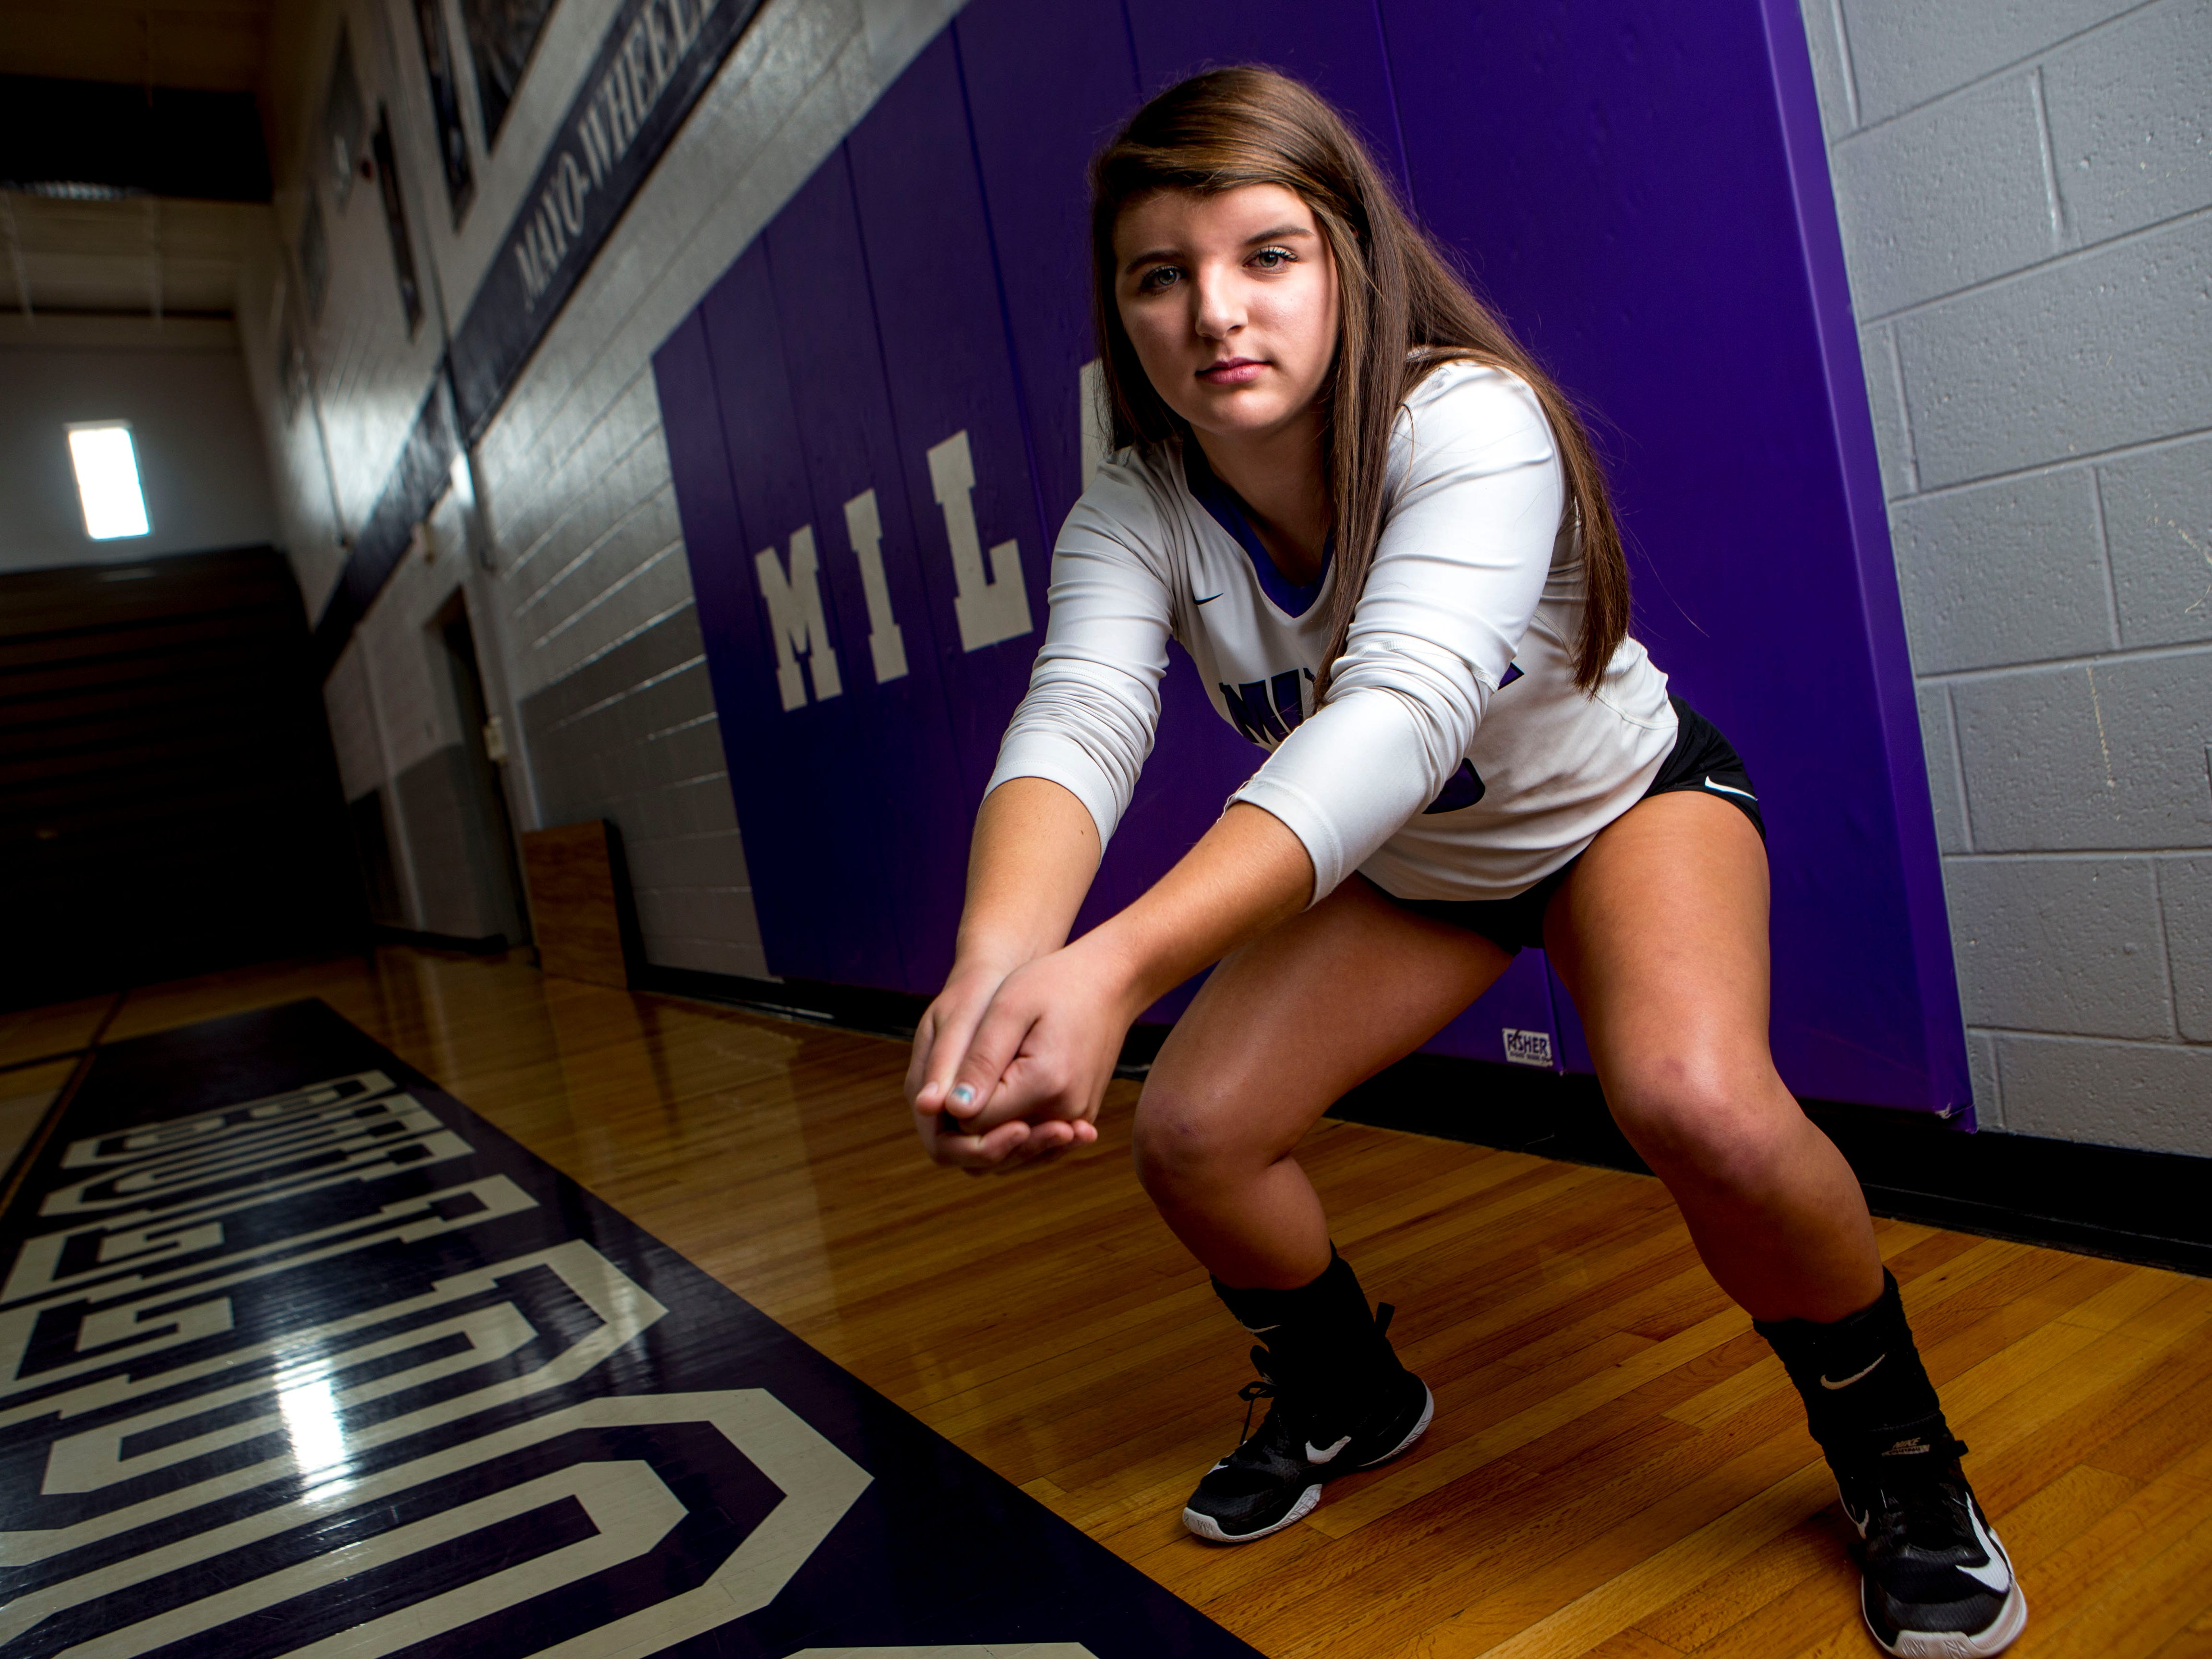 Bailee Graves, a senior volleyball player for Milan High School poses for a portrait at Milan High School in Milan, Tenn., on Tuesday, Sept. 25, 2018.